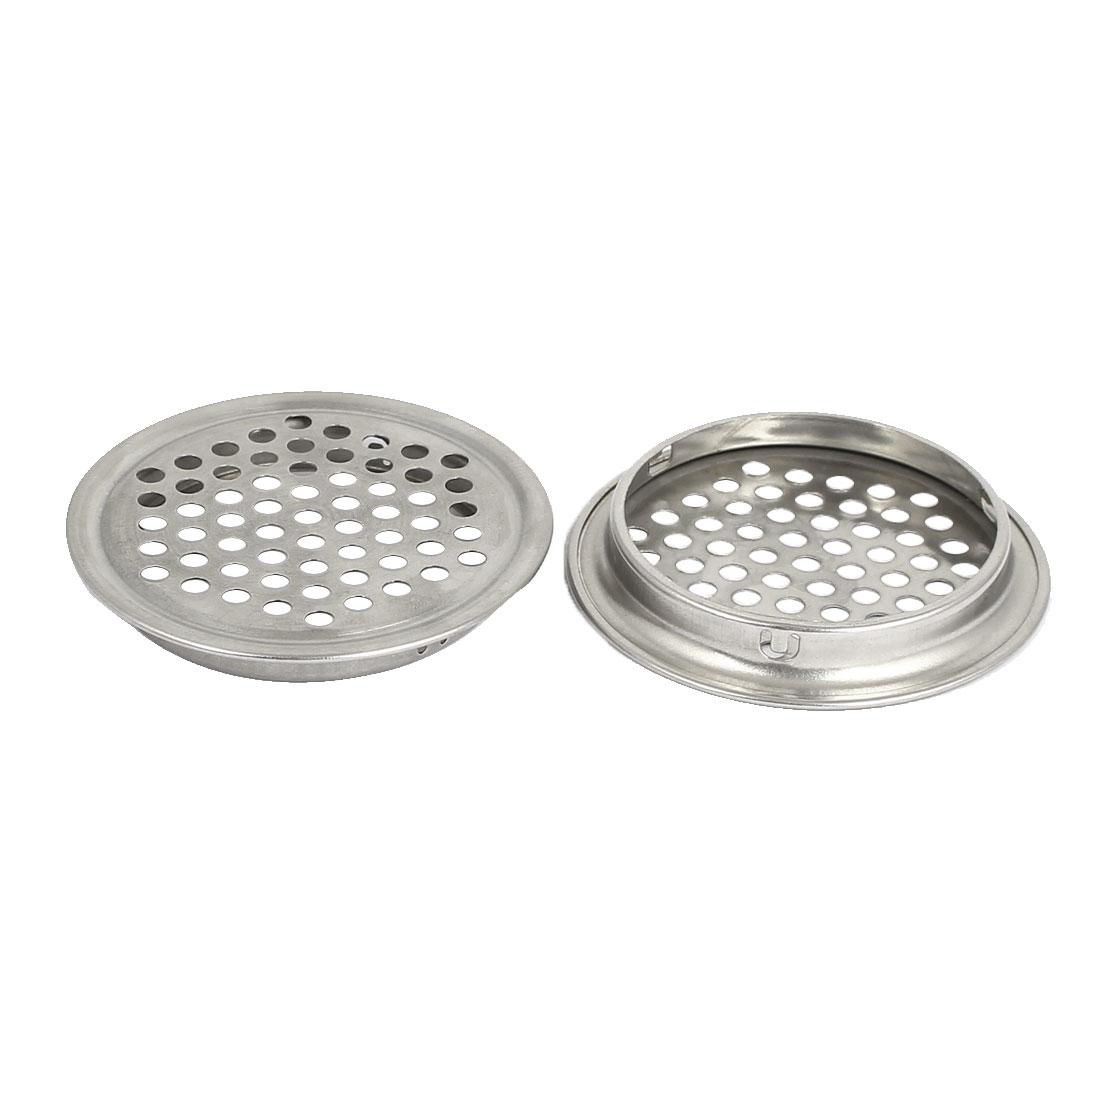 Kitchen Stainless Steel Sink Strainer Waste Disposer Plug Drain Filter 2 Pcs